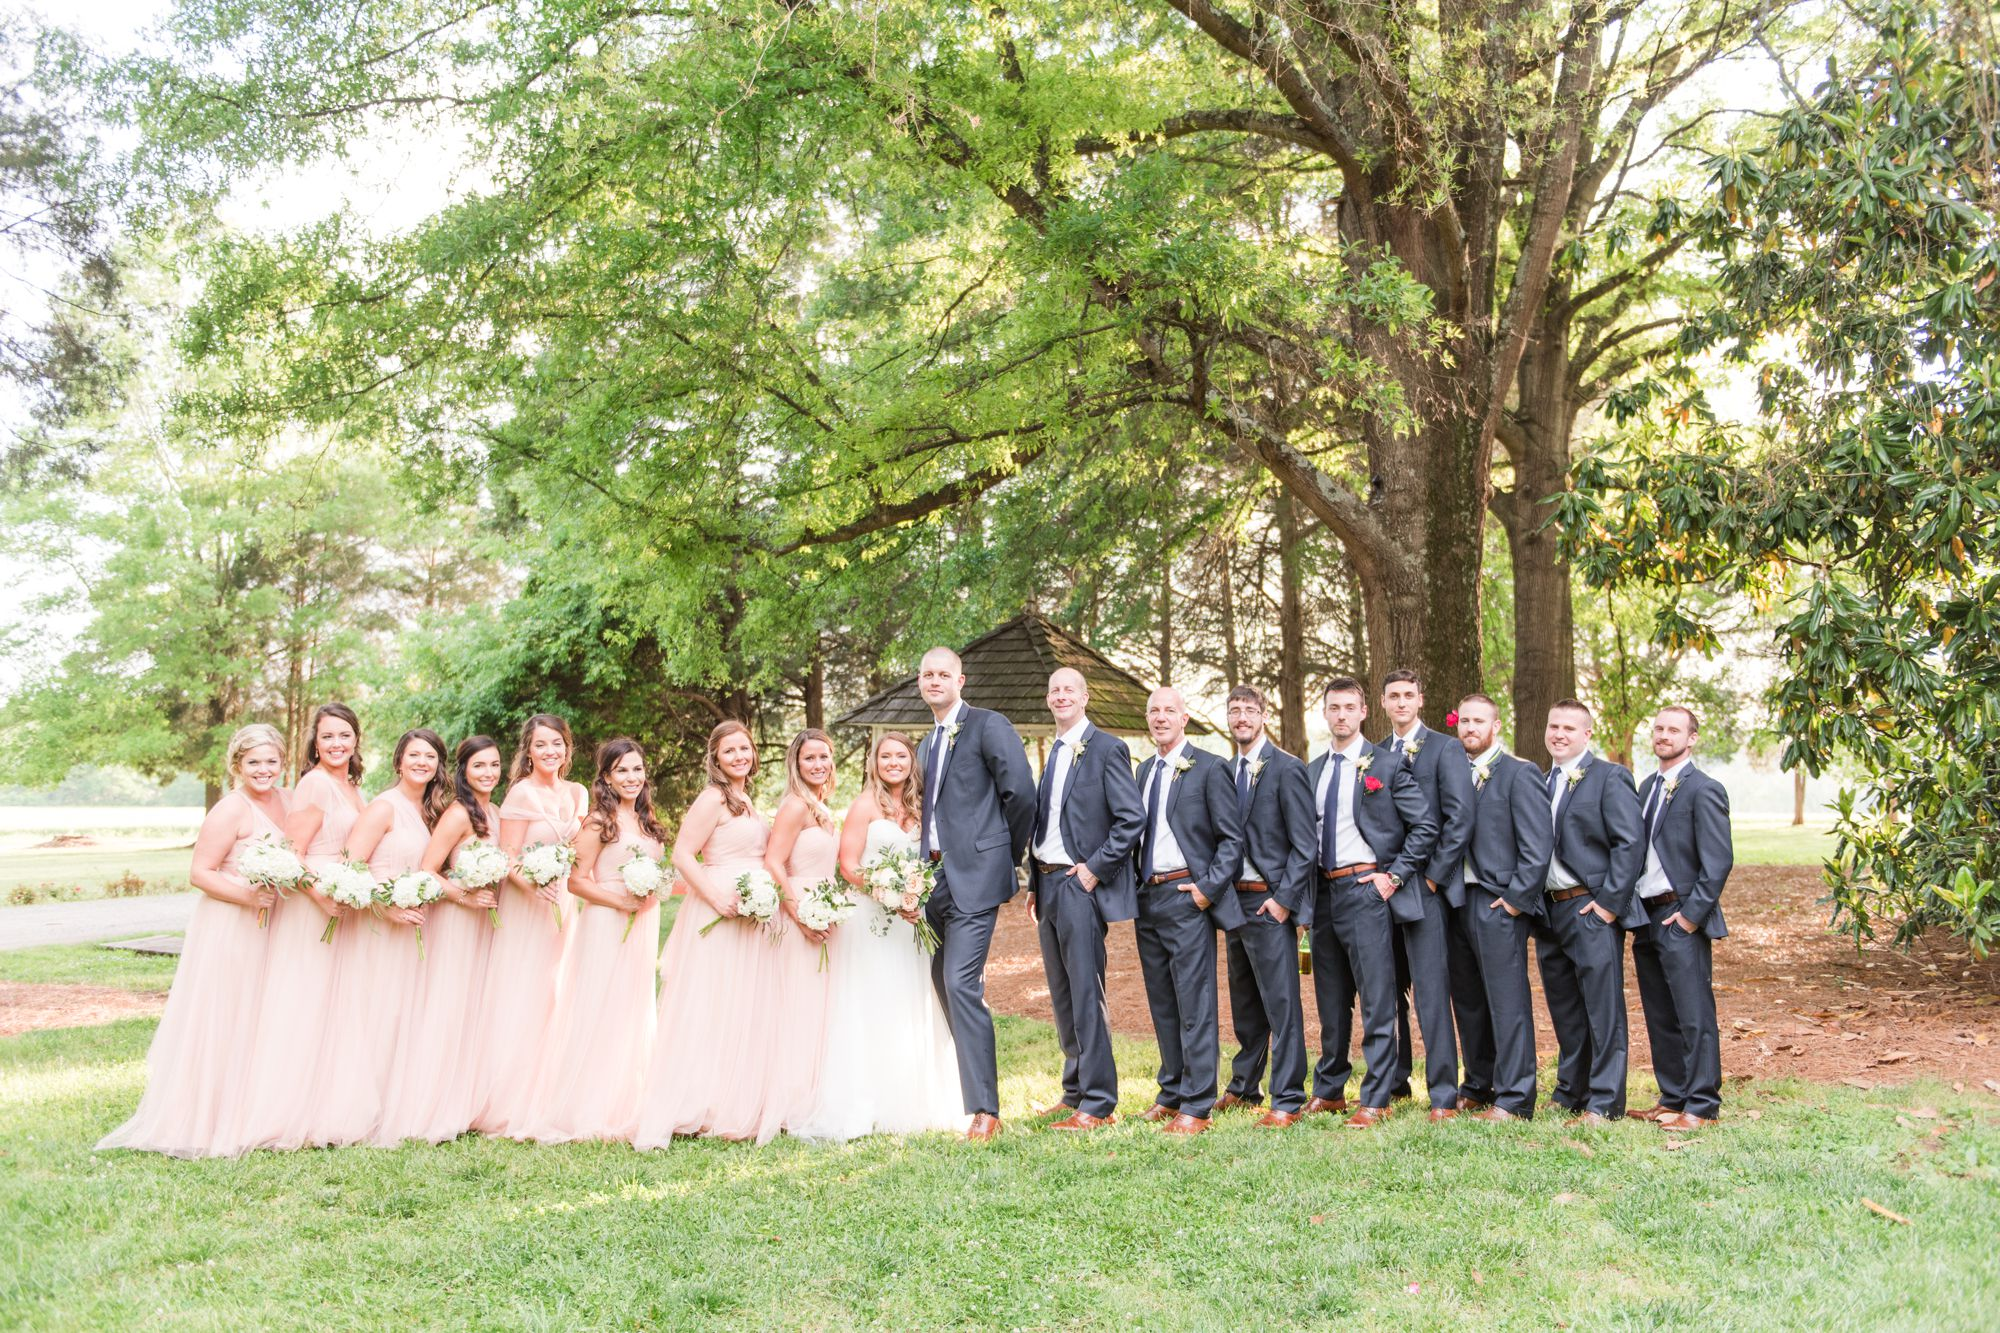 beaver-dam-house-davidson-nc-wedding-photos 84